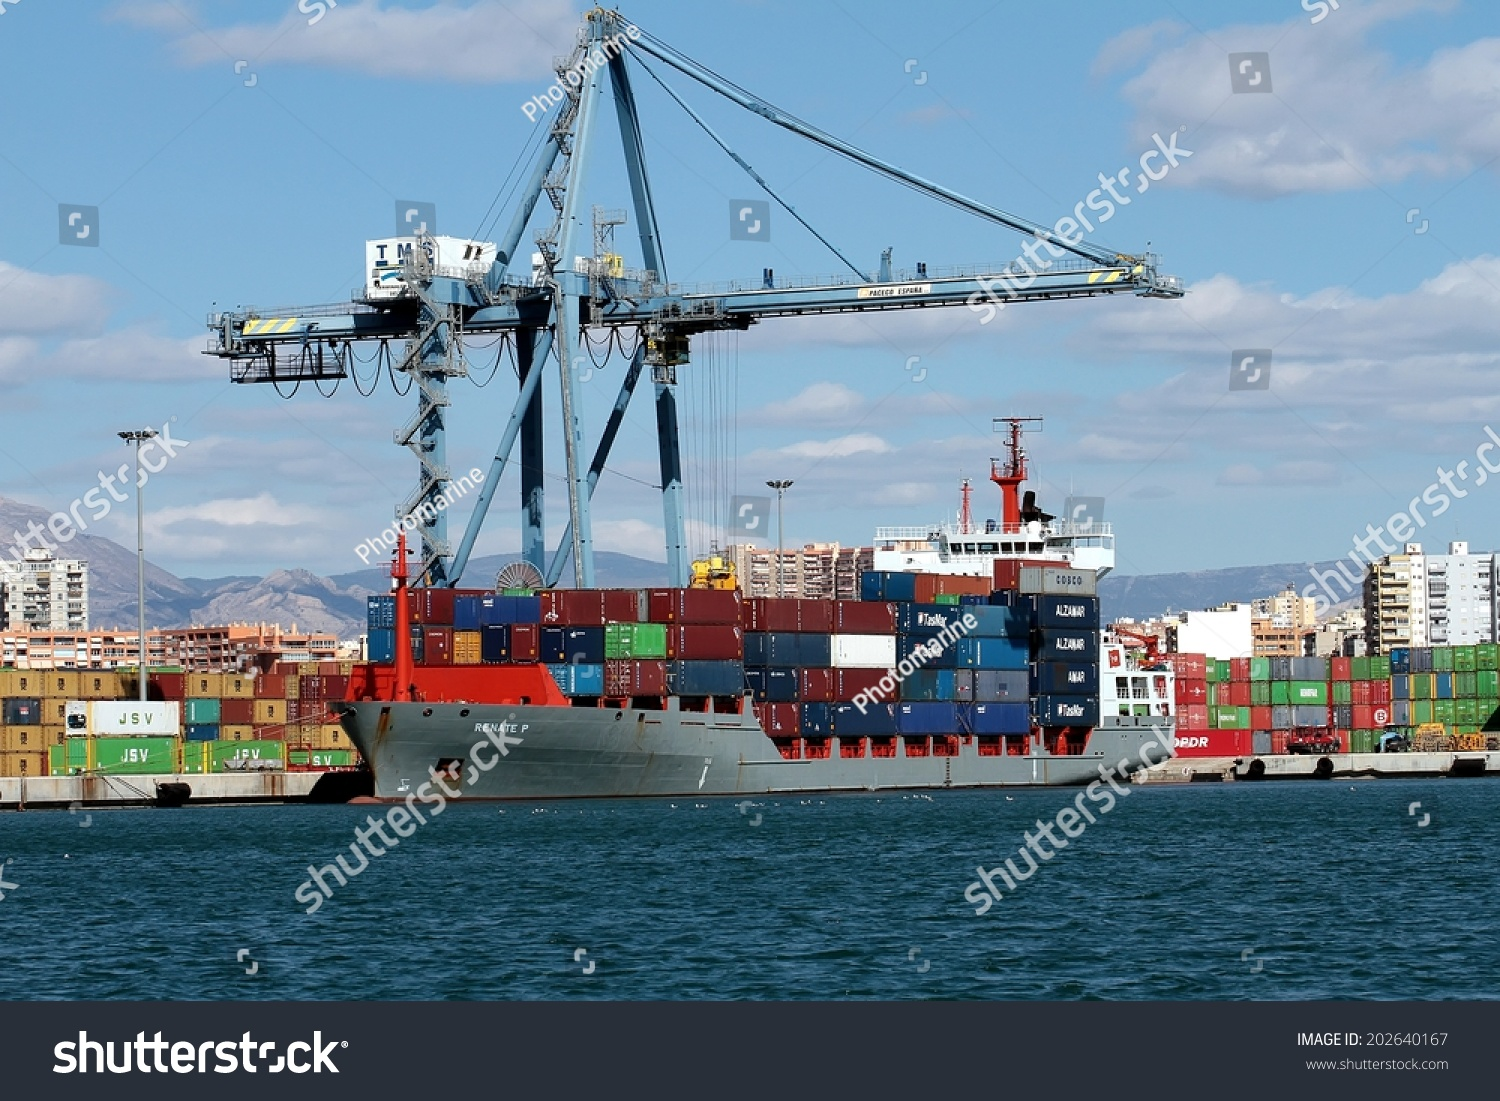 Alicante spain june 20 the container cargo vessel - Stock uno alicante ...